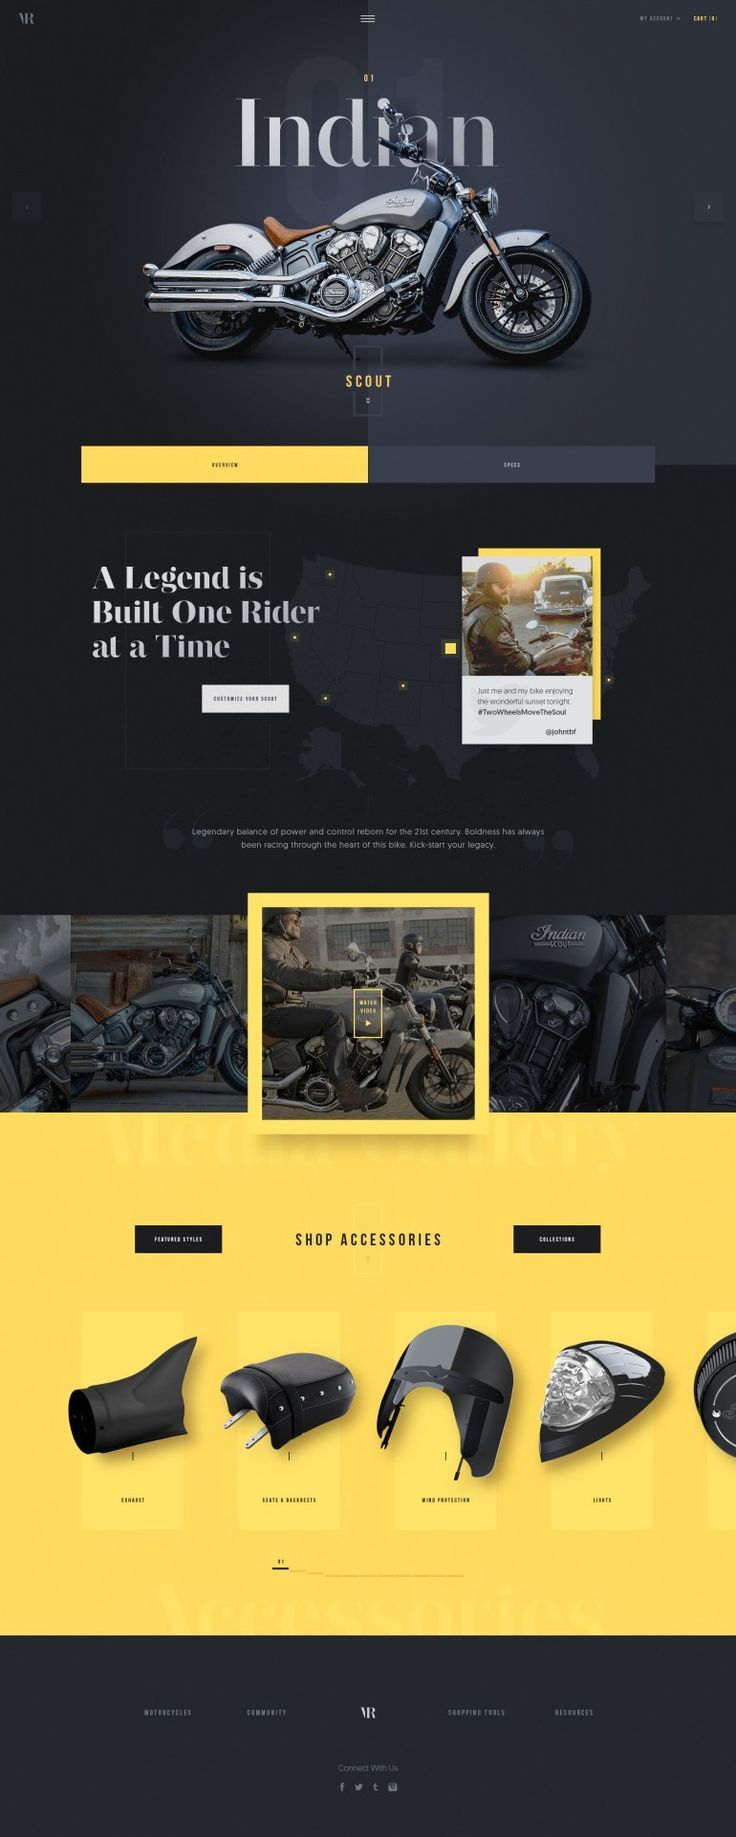 Vintage Rides – Ui design concept layout and visual style.: